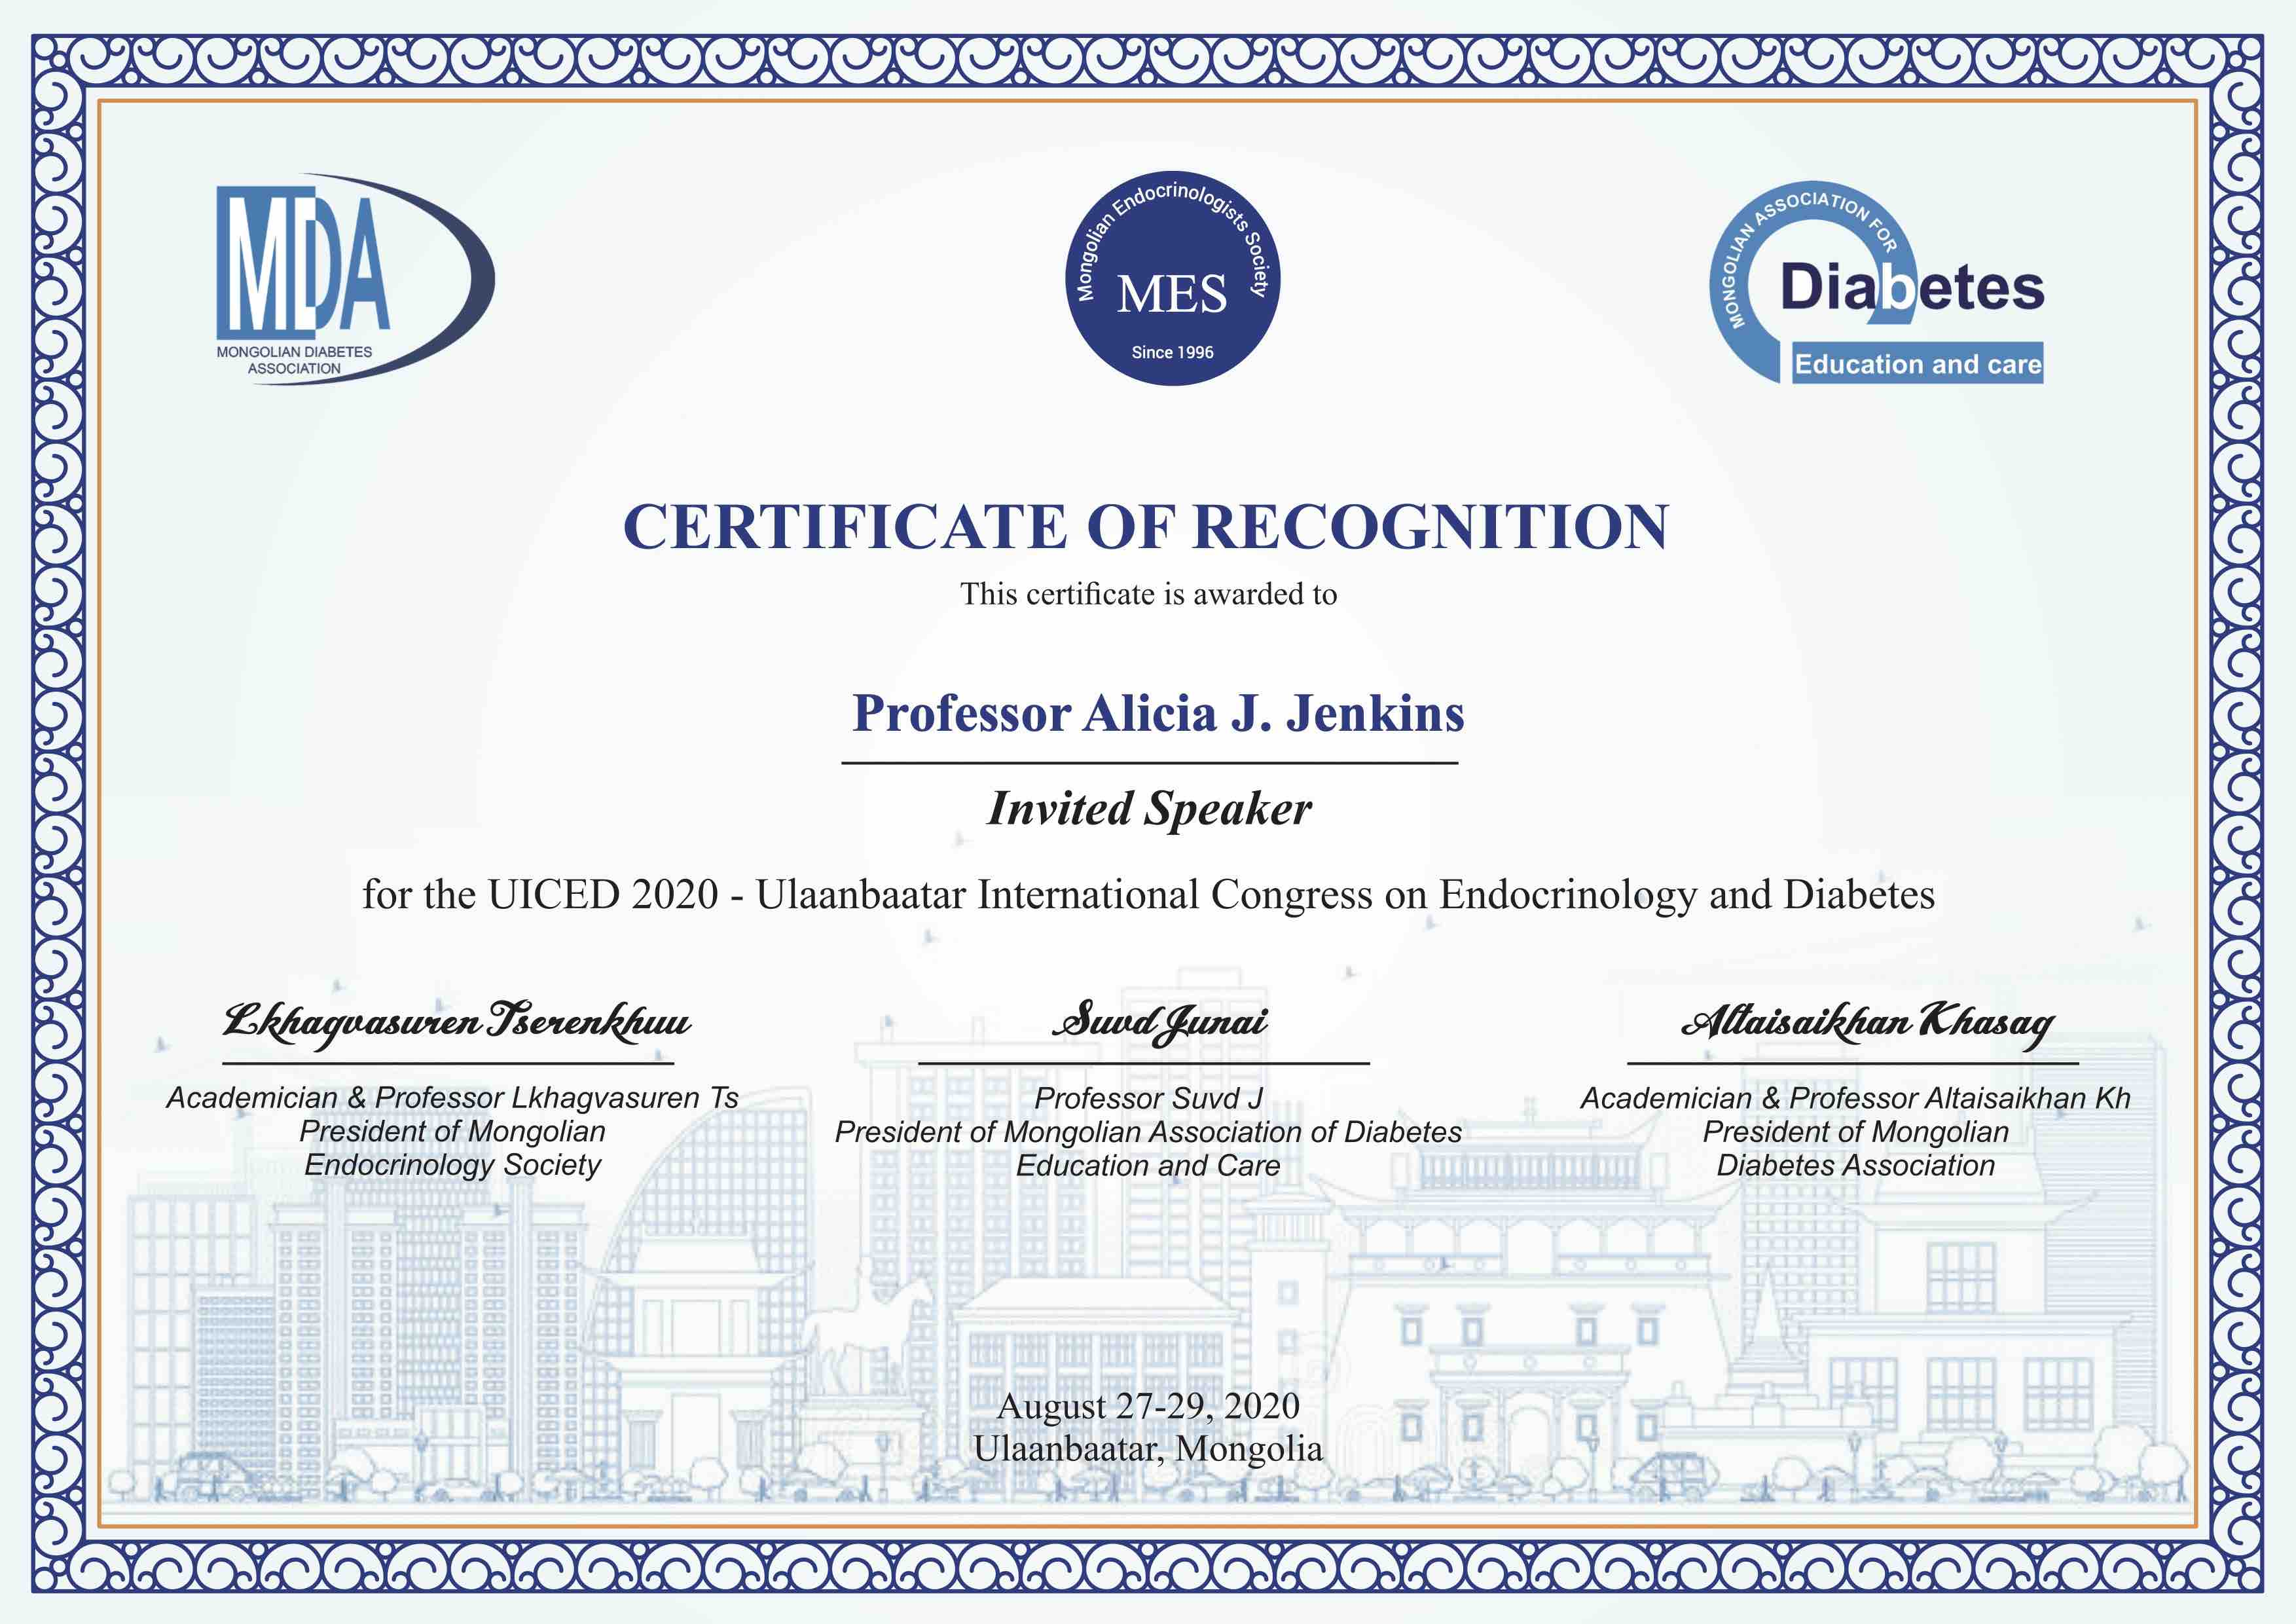 Certificate of Recognition from Ulaanbaatar International Congress on Endocrinology & Diabetes